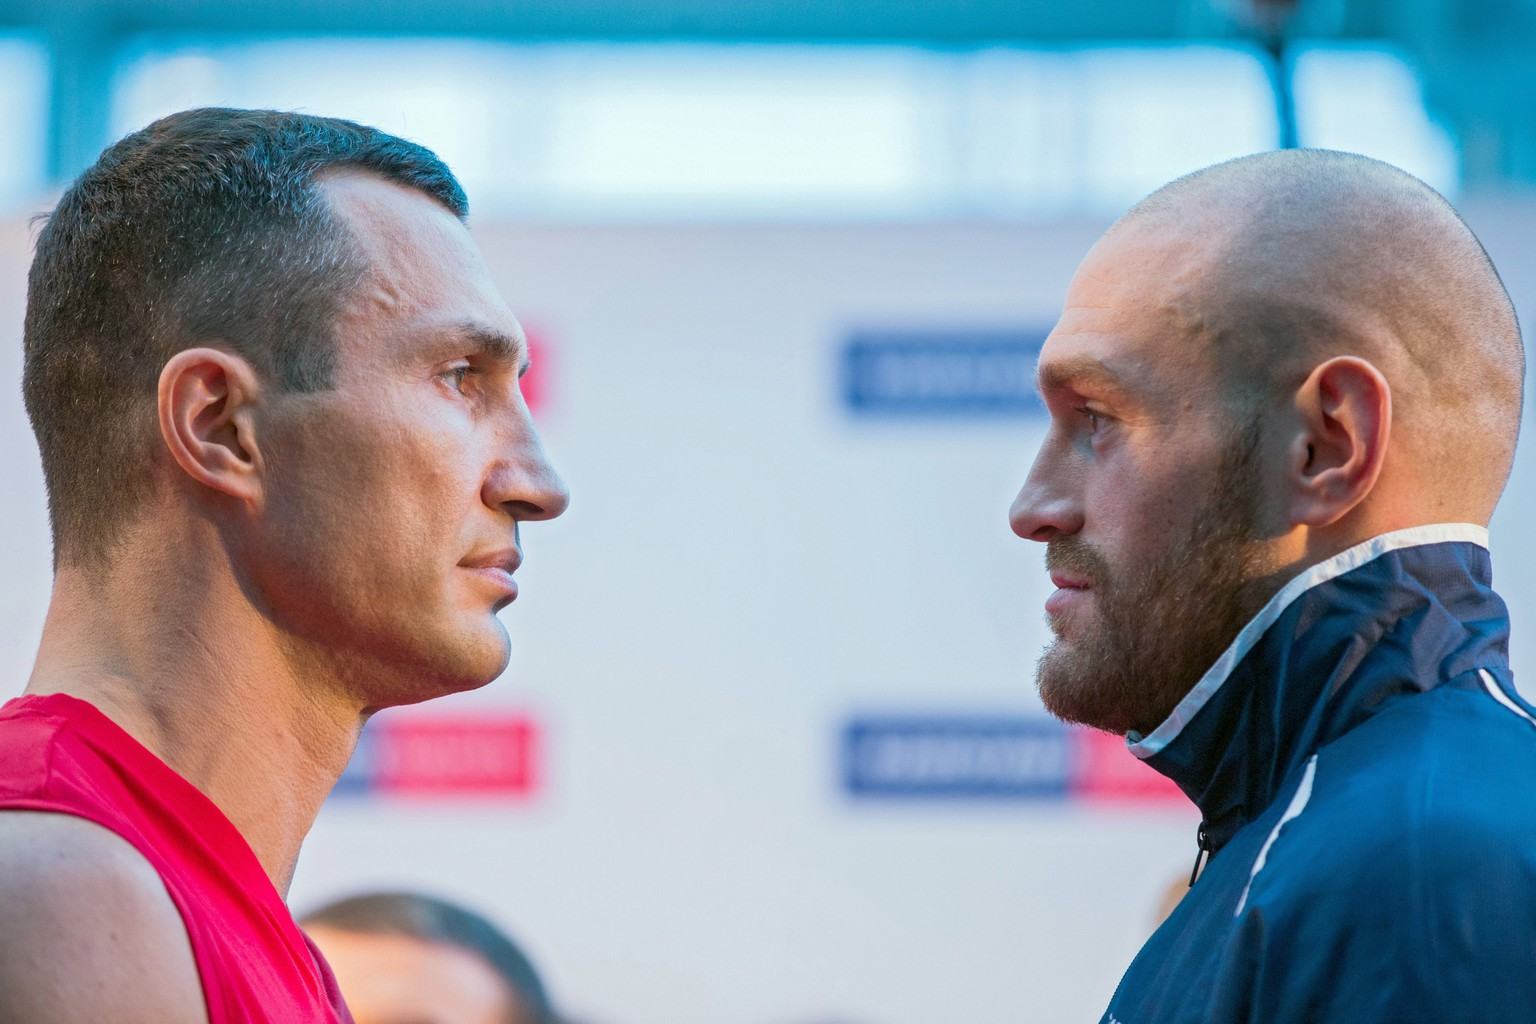 epa05044385 Ukrainian heavyweight boxer Wladimir Klitschko (L), who is holding the titles of the WBA, IBF, WBO, and IBO, faces his British contender Tyson Fury (R) at the official weigh-in in Essen, Germany, 27 November 2015. Klitschko will face Fury in a bout on 28 November 2015.  EPA/ROLD VENNENBERND